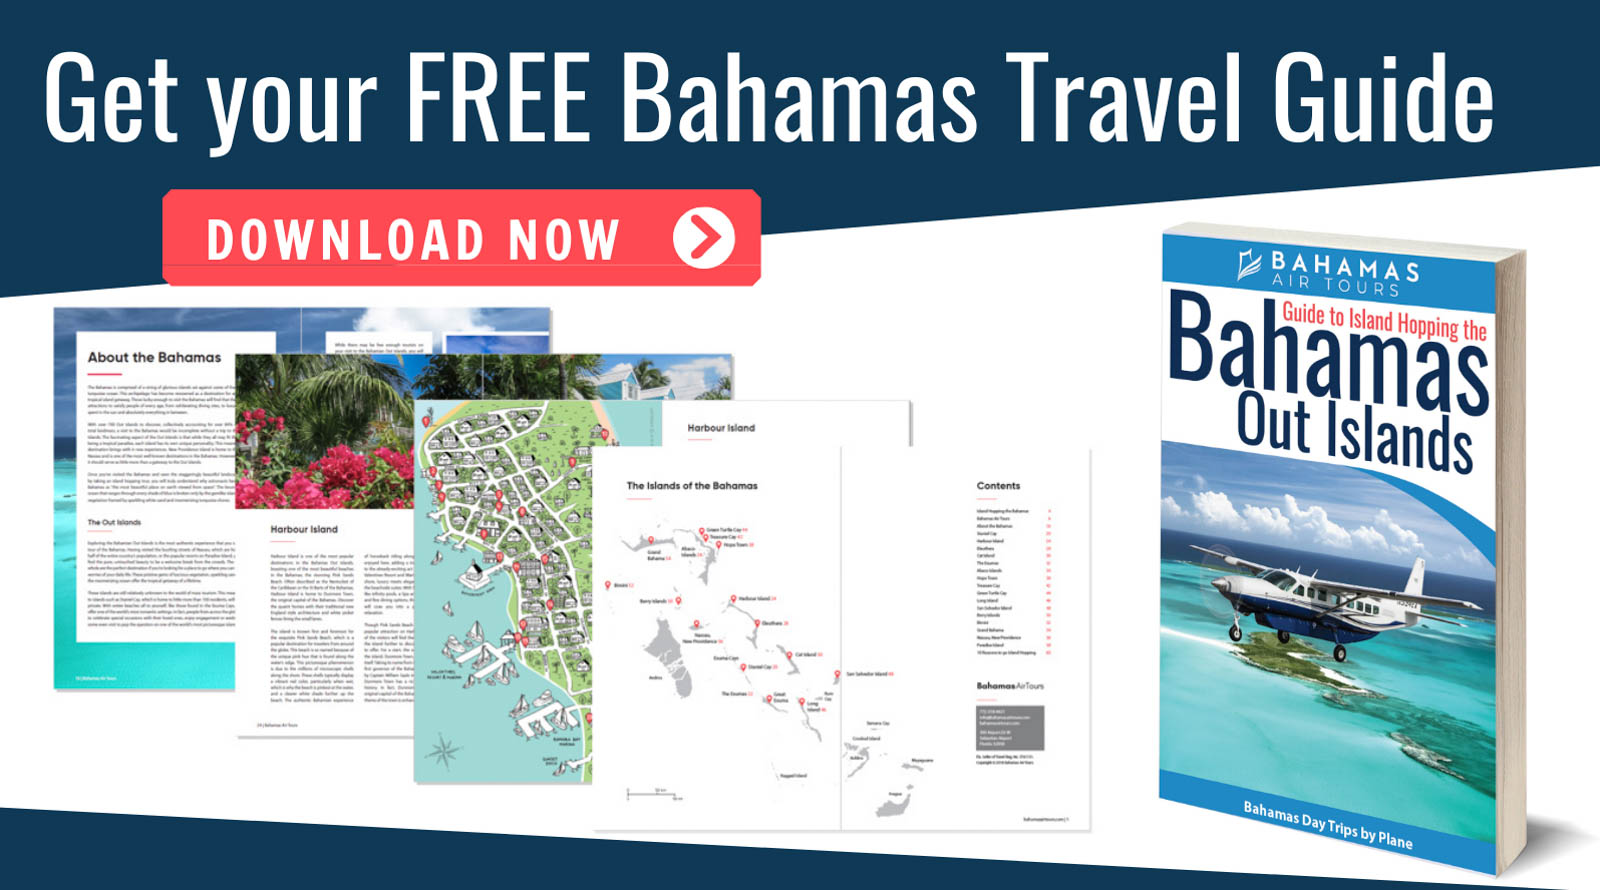 Bahamas Travel Guide Free Download. Visit the Bahamas and Staniel Cay on a Bahamas Day Trip with Bahamas Air Tours